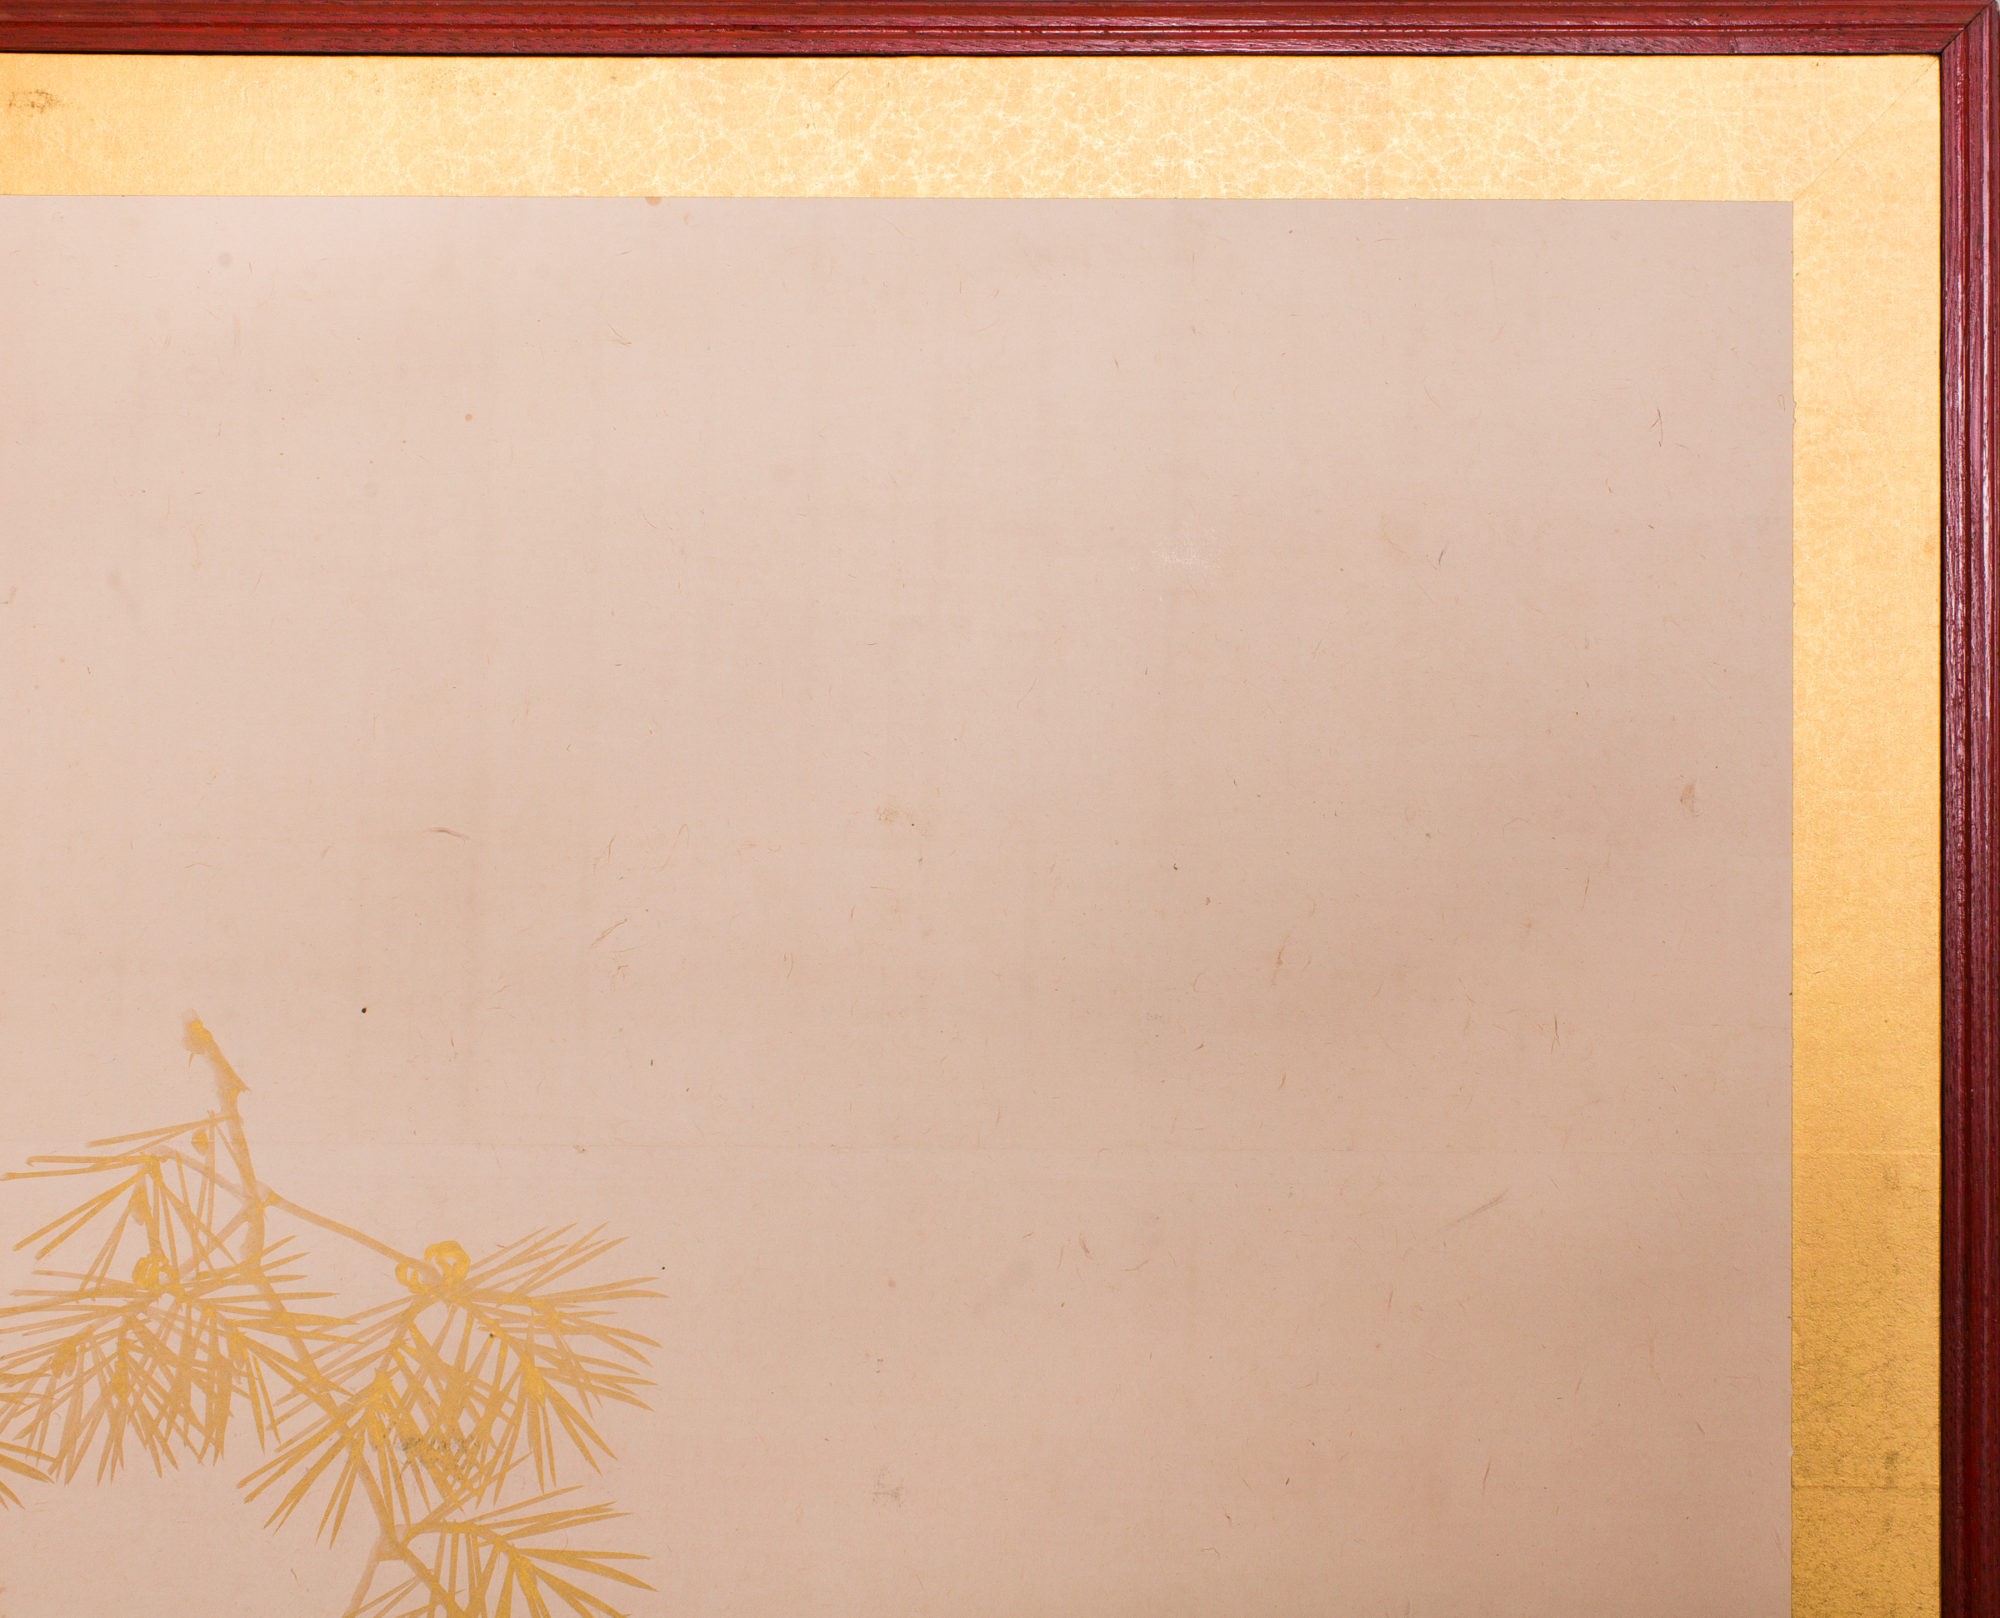 Japanese Two Panel Screen: Young Pine